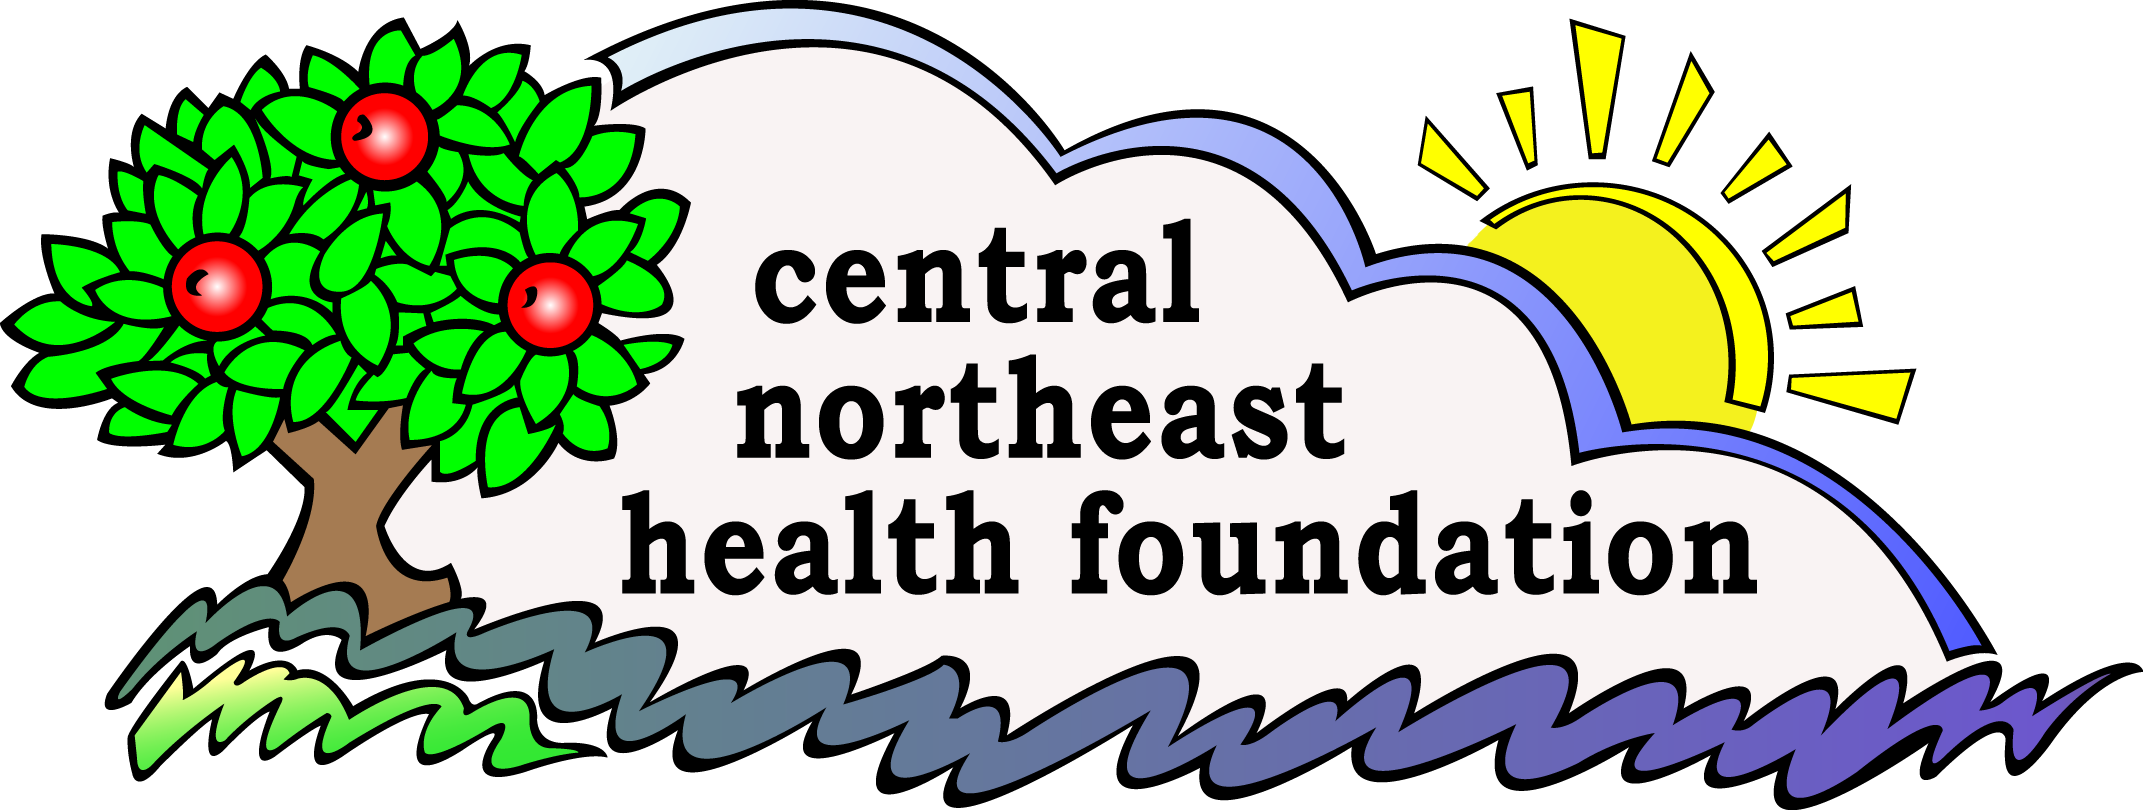 Central Northeast Health Foundation